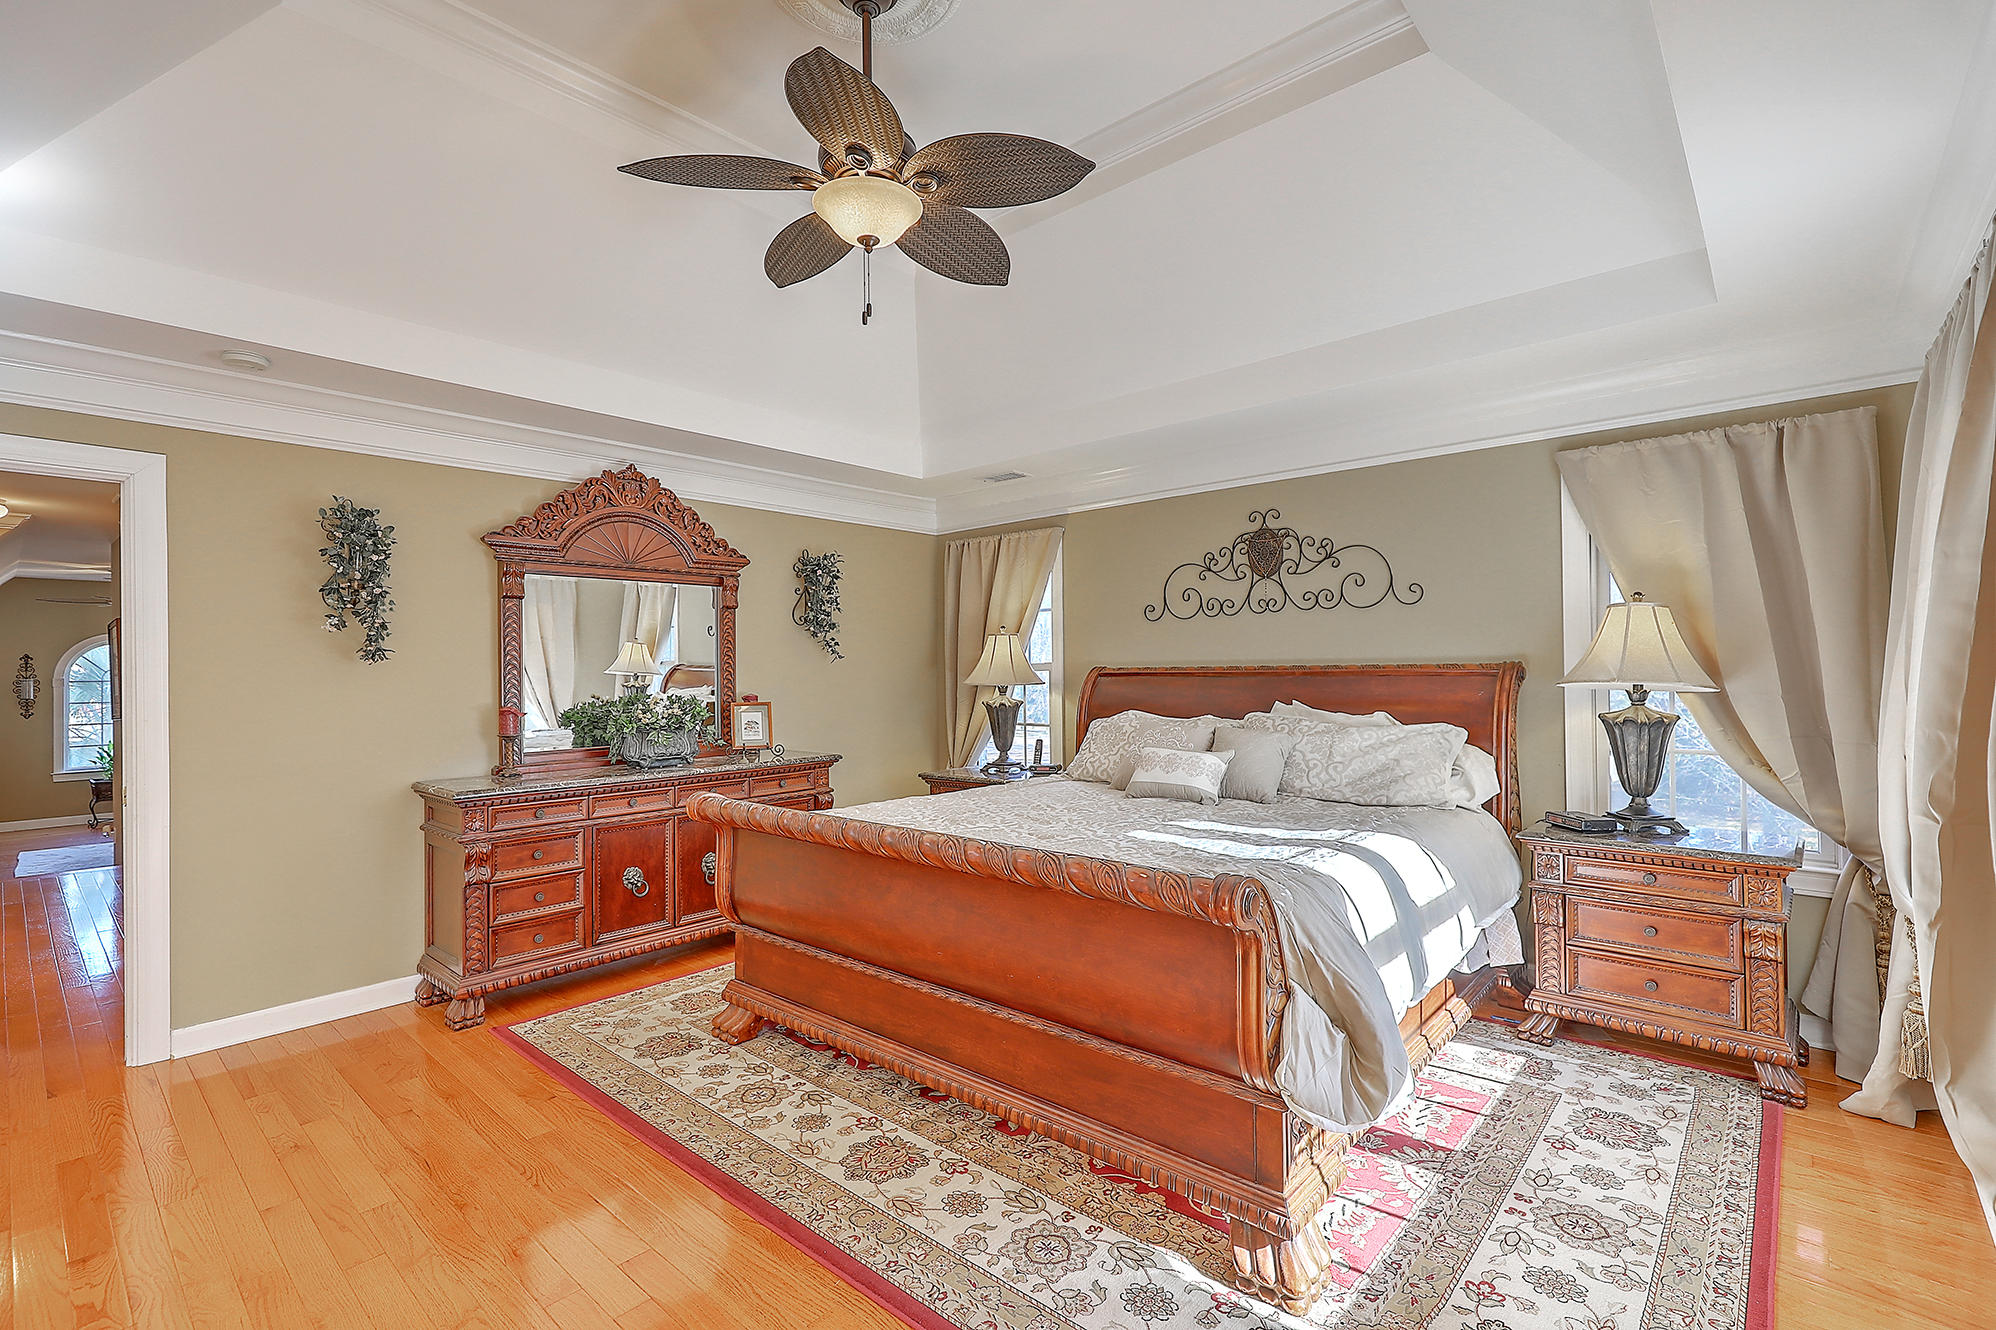 Dunes West Homes For Sale - 1784 Shell Ring Circle, Mount Pleasant, SC - 28